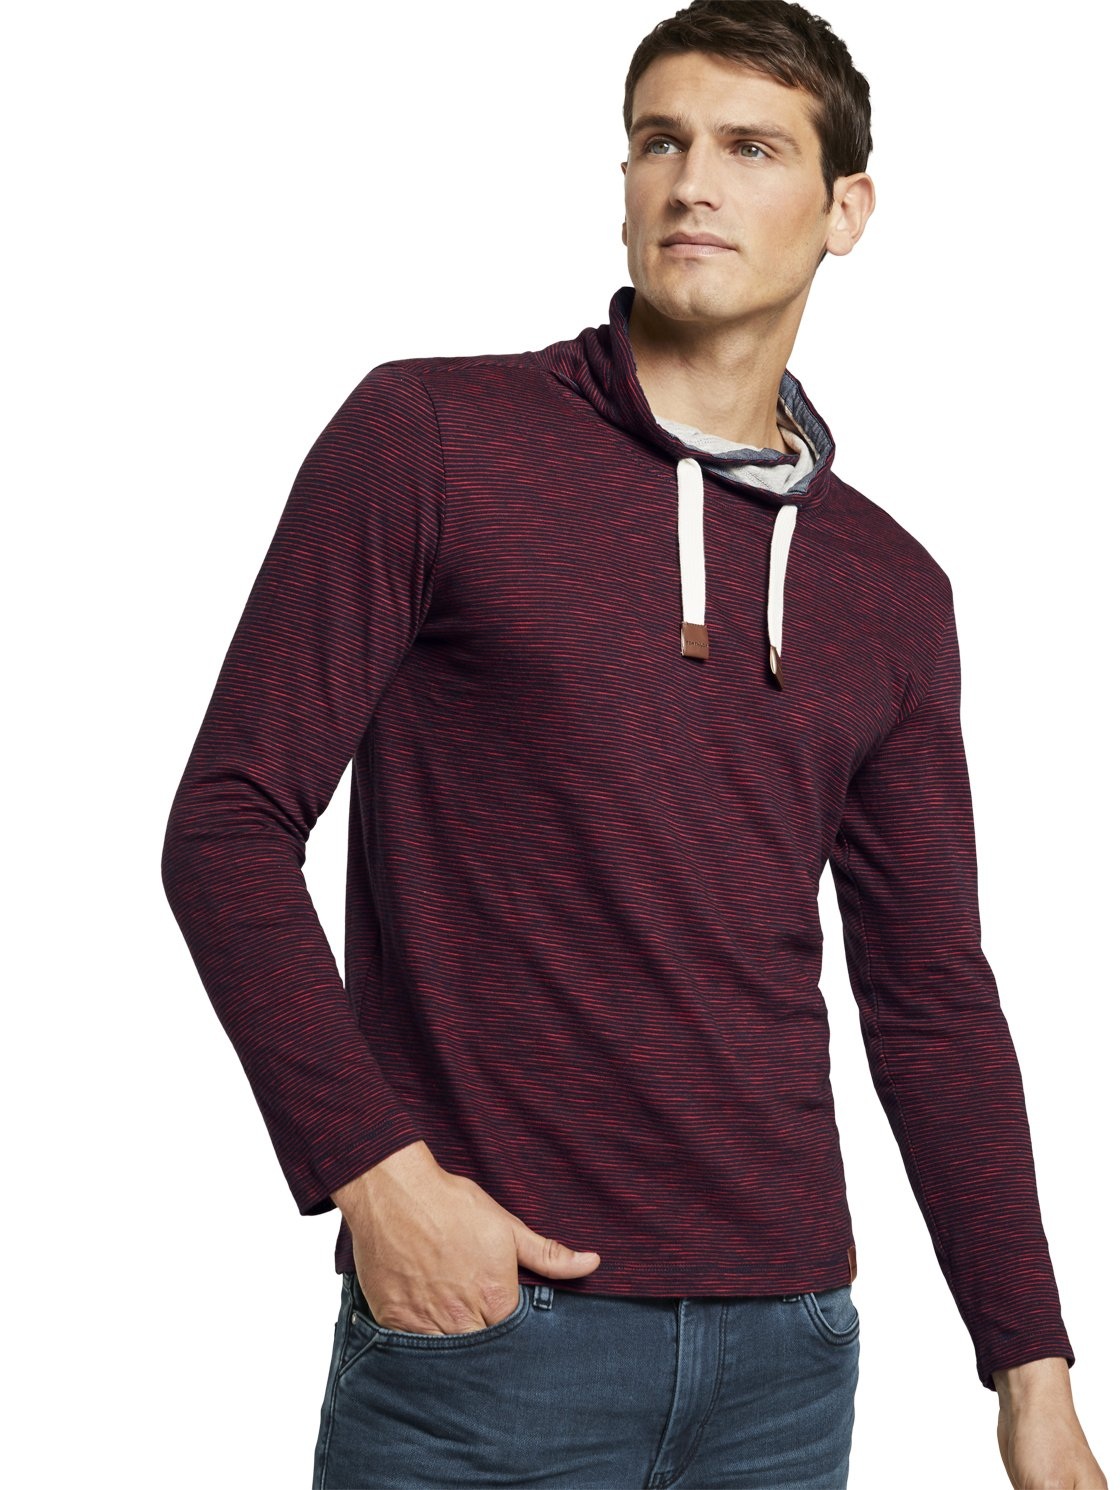 Tom Tailor men's sweater red 1022754